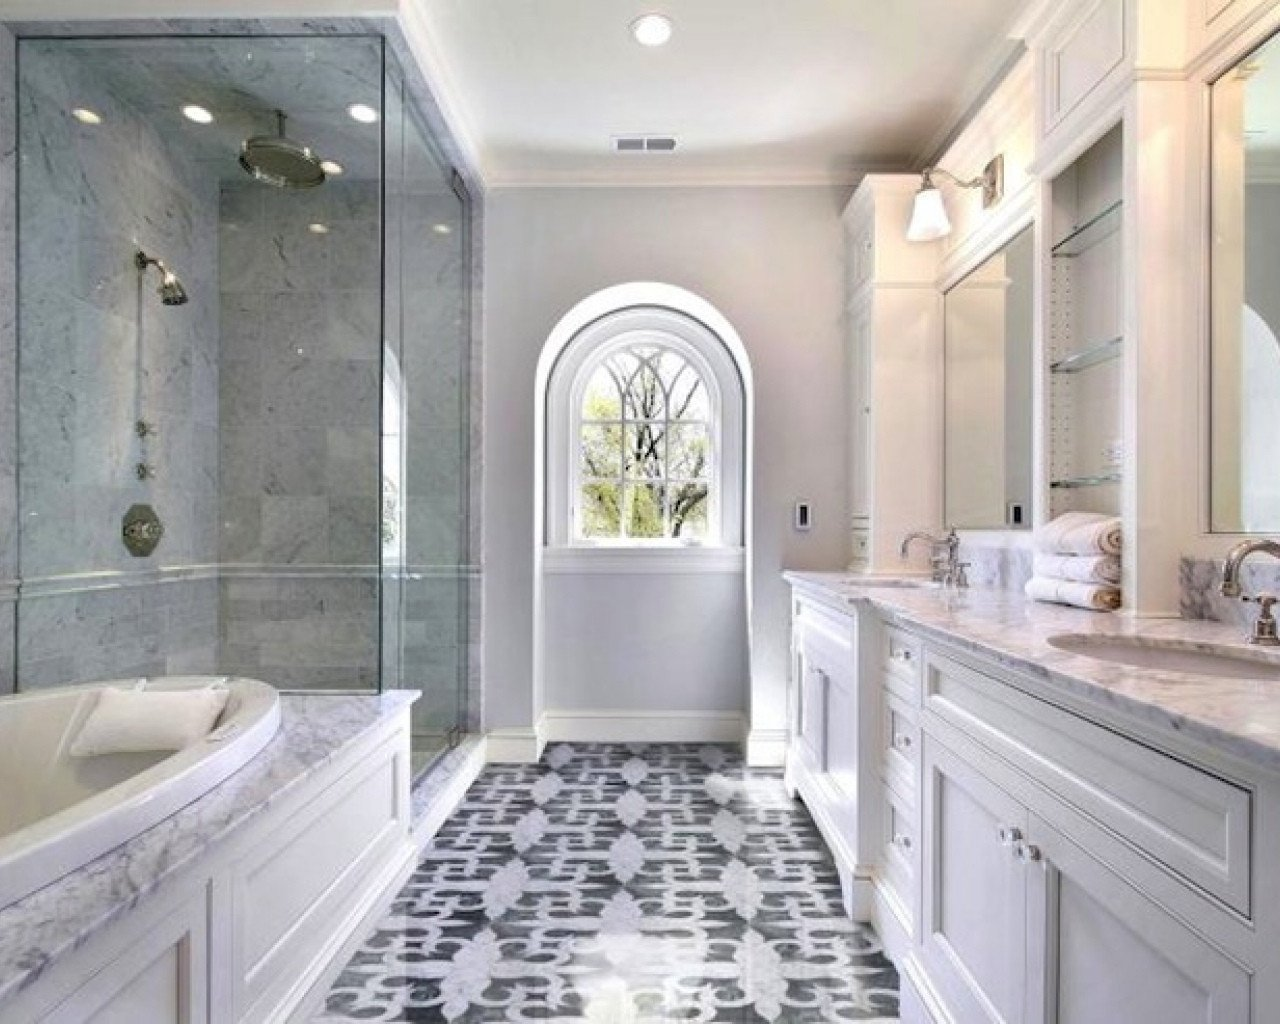 Floor and Decor Bathroom Tile Fresh 25 Amazing Italian Bathroom Tile Designs Ideas and Pictures